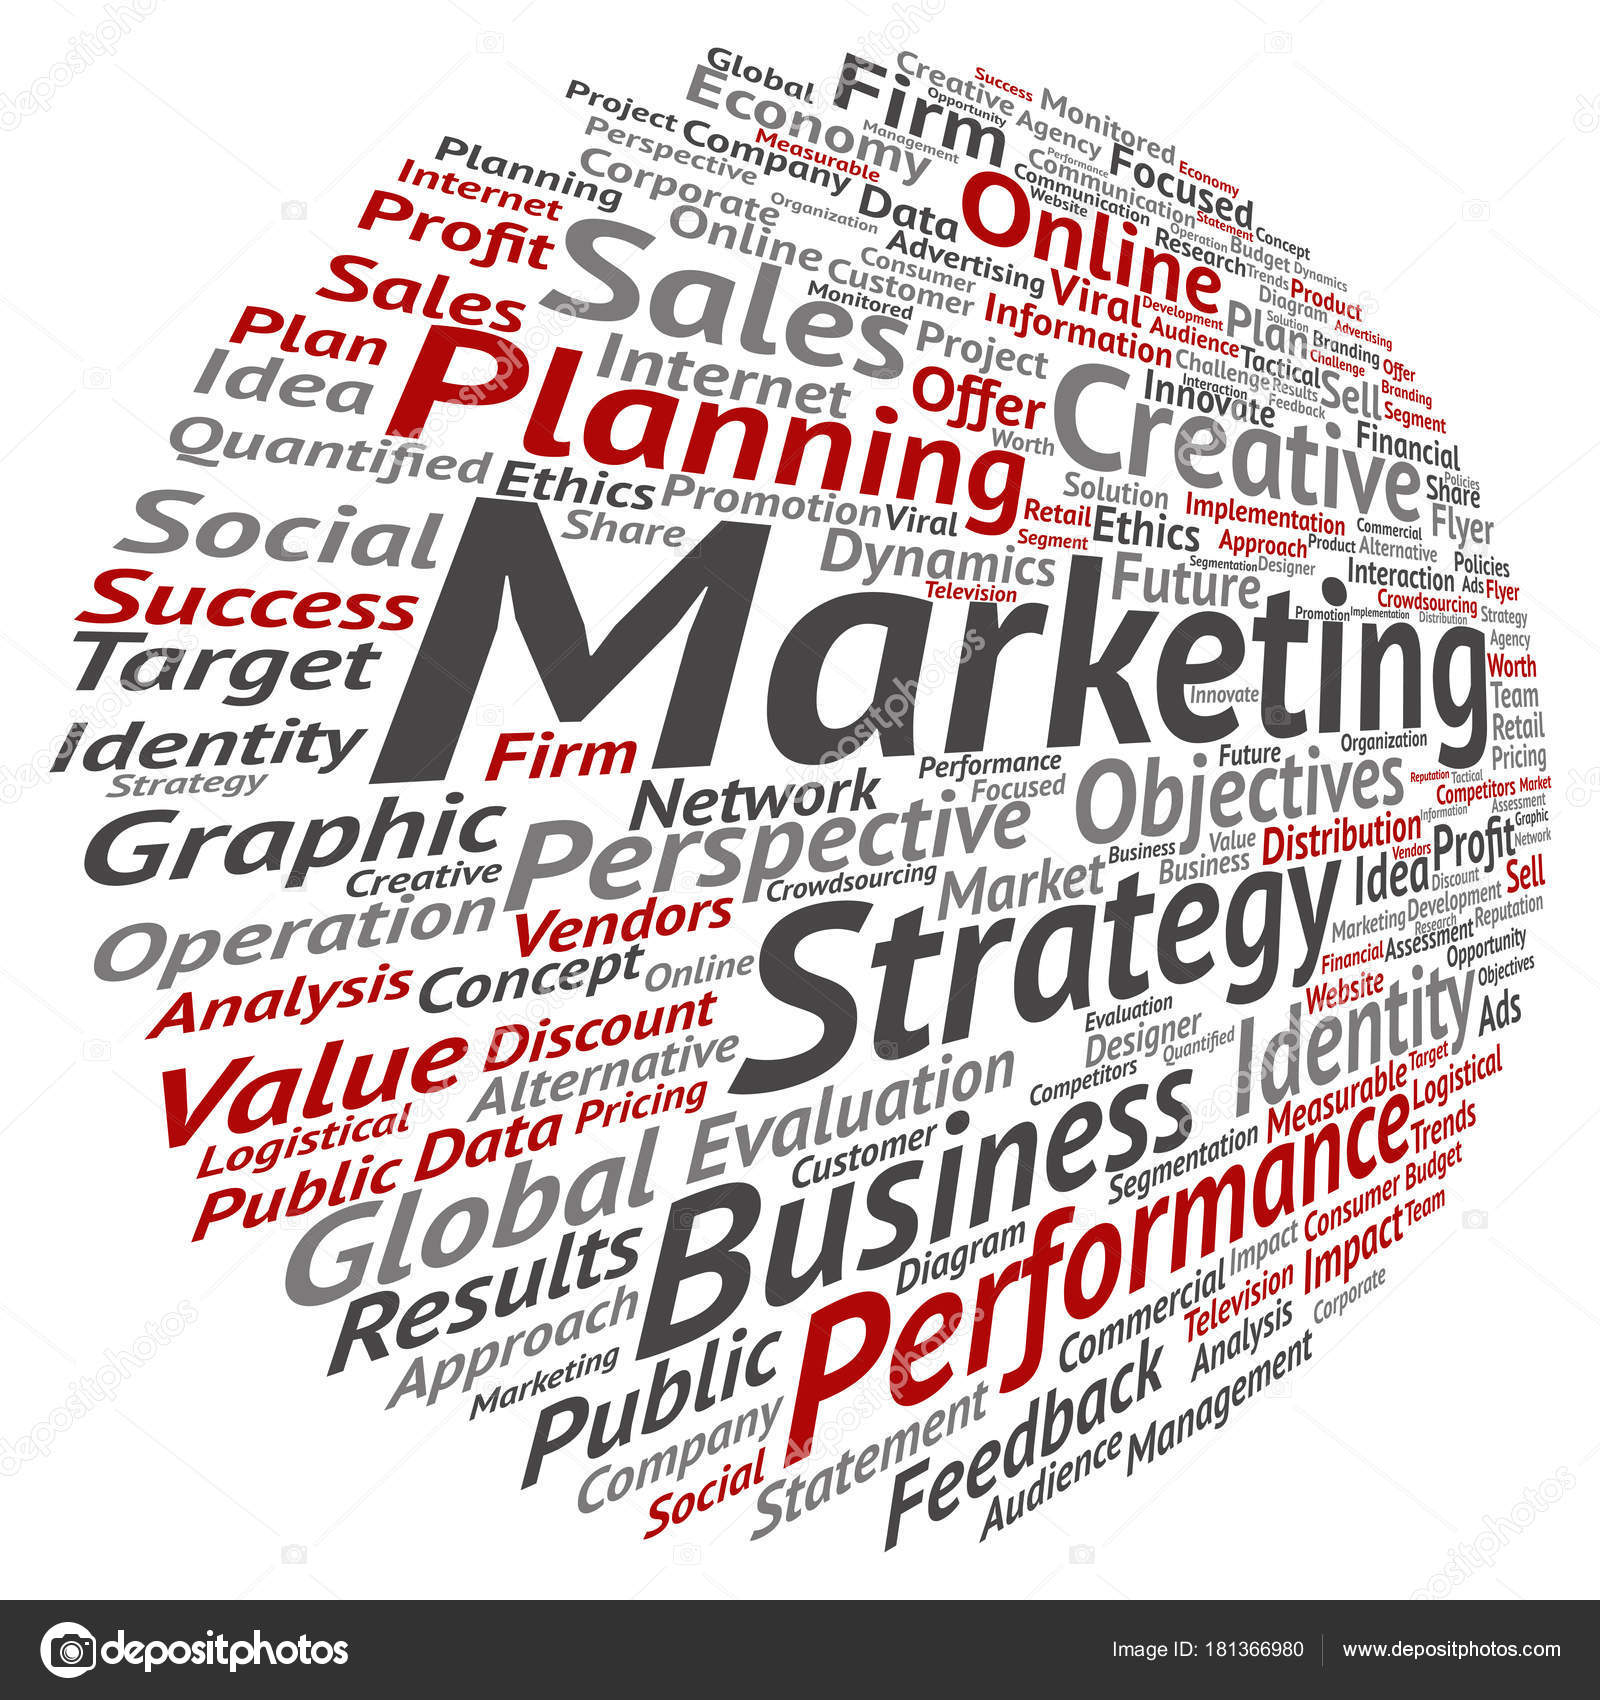 differences between business and consumer markets The above definitions of business marketing and consumer marketing highlight the difference between the two commonly used terms in marketing (b2b and b2c)business marketers do not entertain consumers who purchase products and services for their end-use.